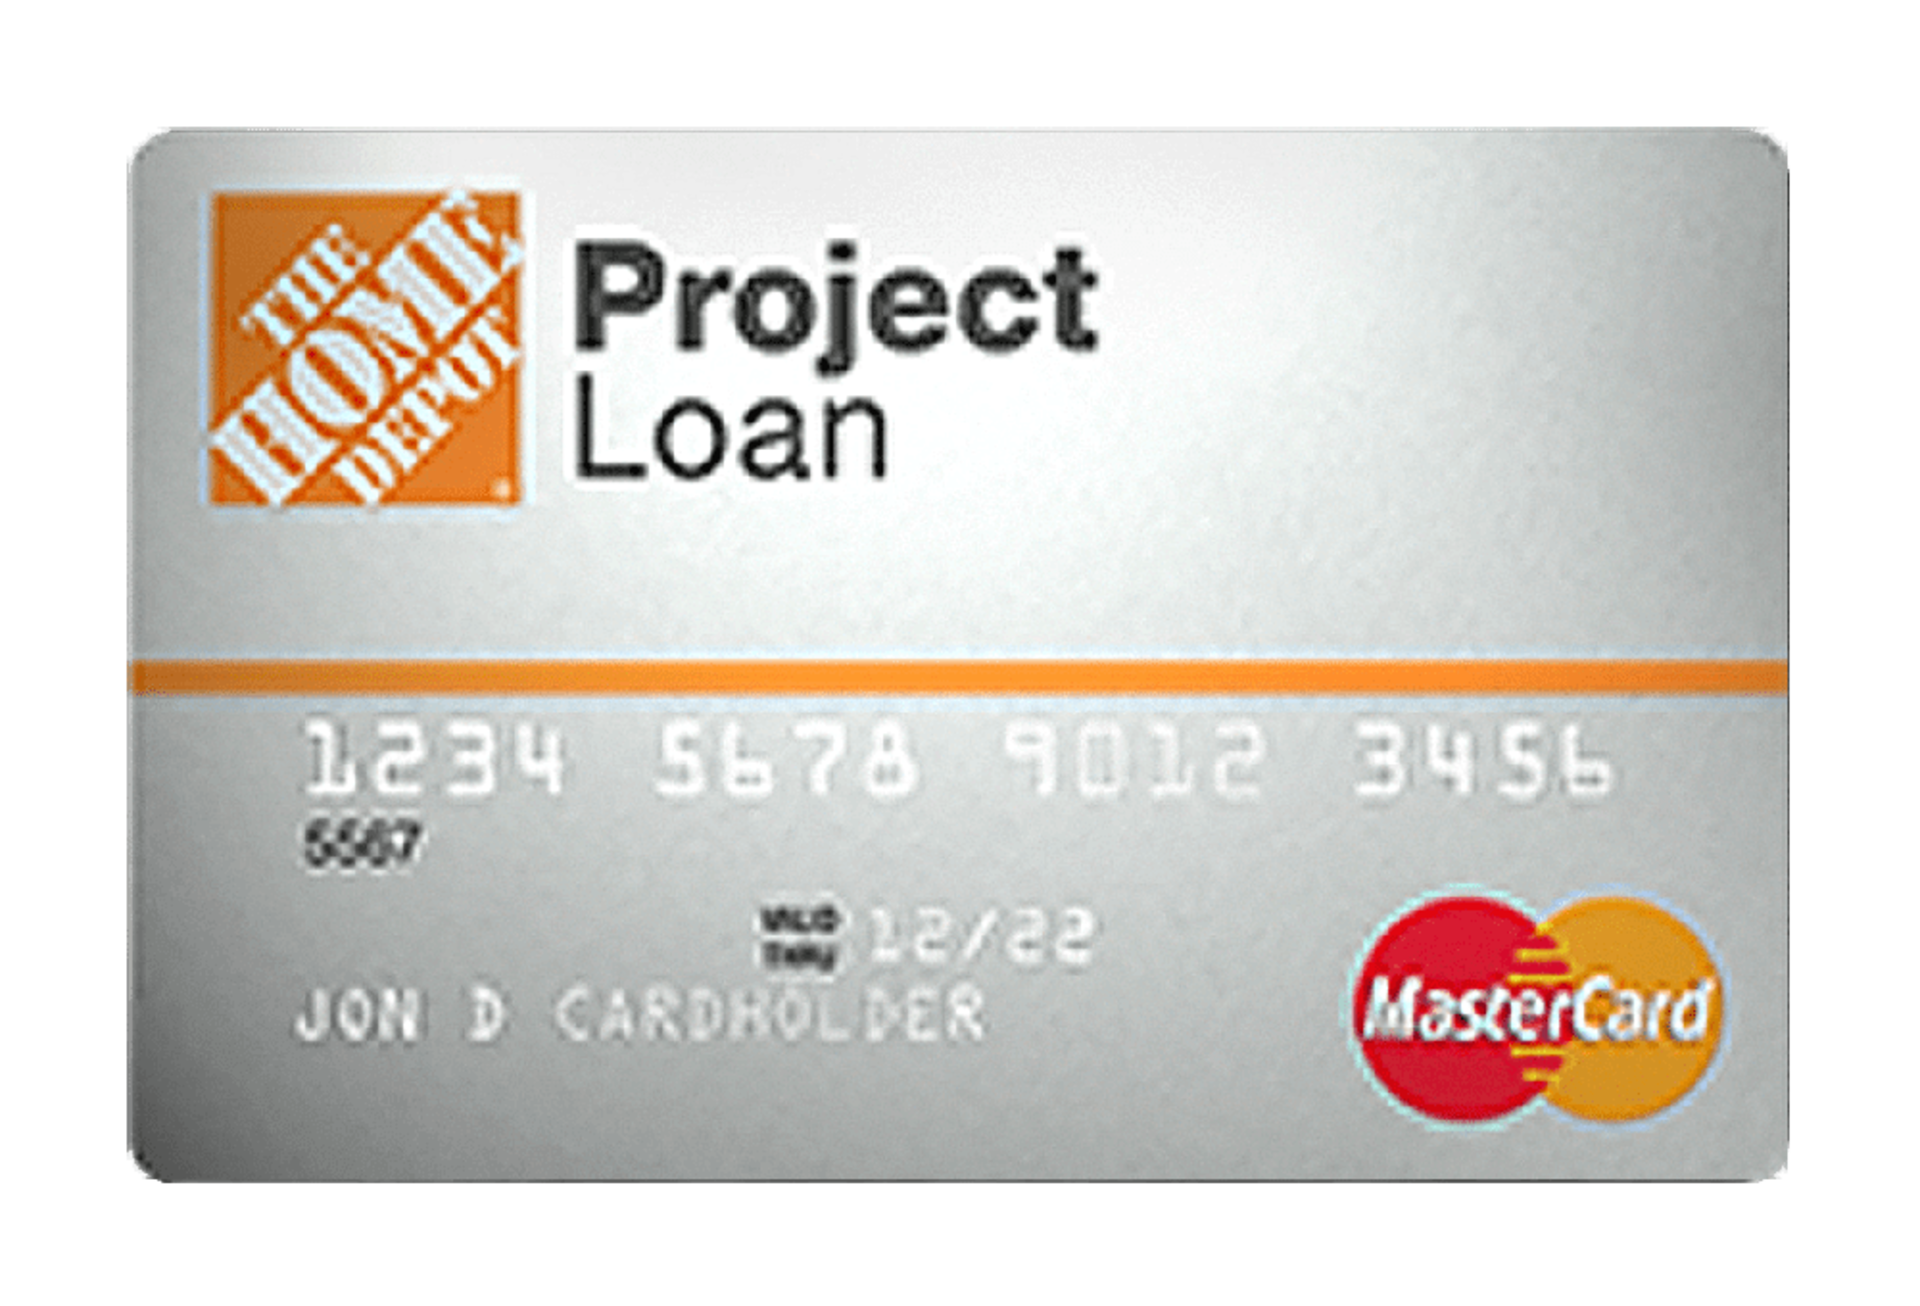 Home Depot Project Loan Credit Card Managed by Tally.